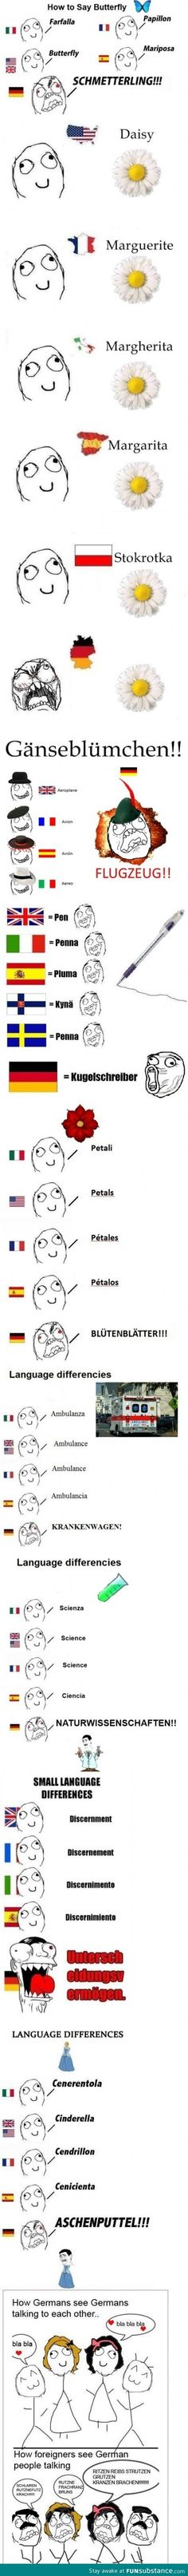 German language. Absolutely hilarious. I feel like I shouldn't be laughing at this so hard.